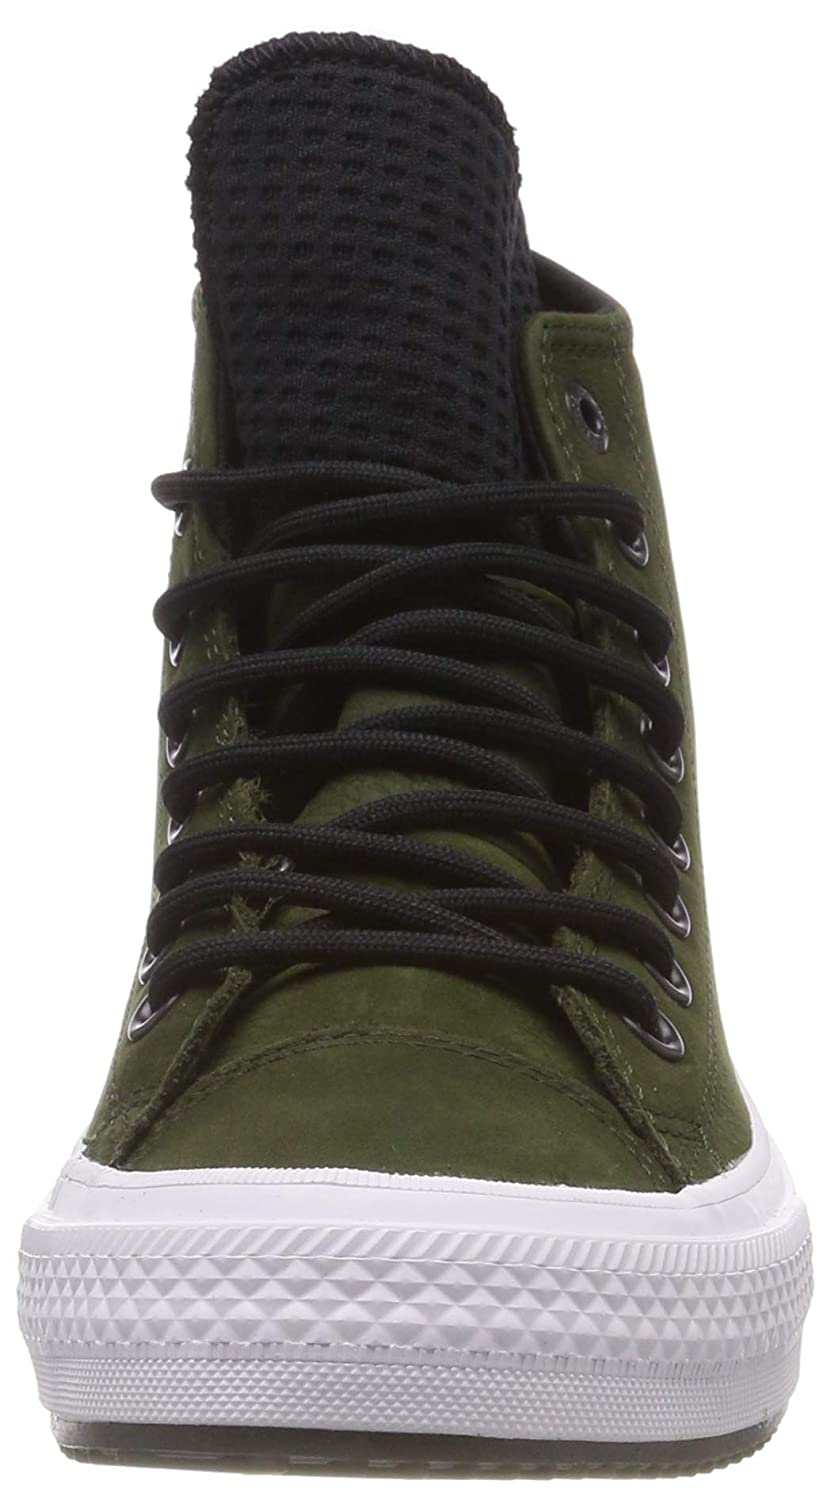 d0c43a12c924 Converse Unisex Adults  Chuck Taylor All Star Wp Boot Hi-Top Trainers   Amazon.co.uk  Shoes   Bags